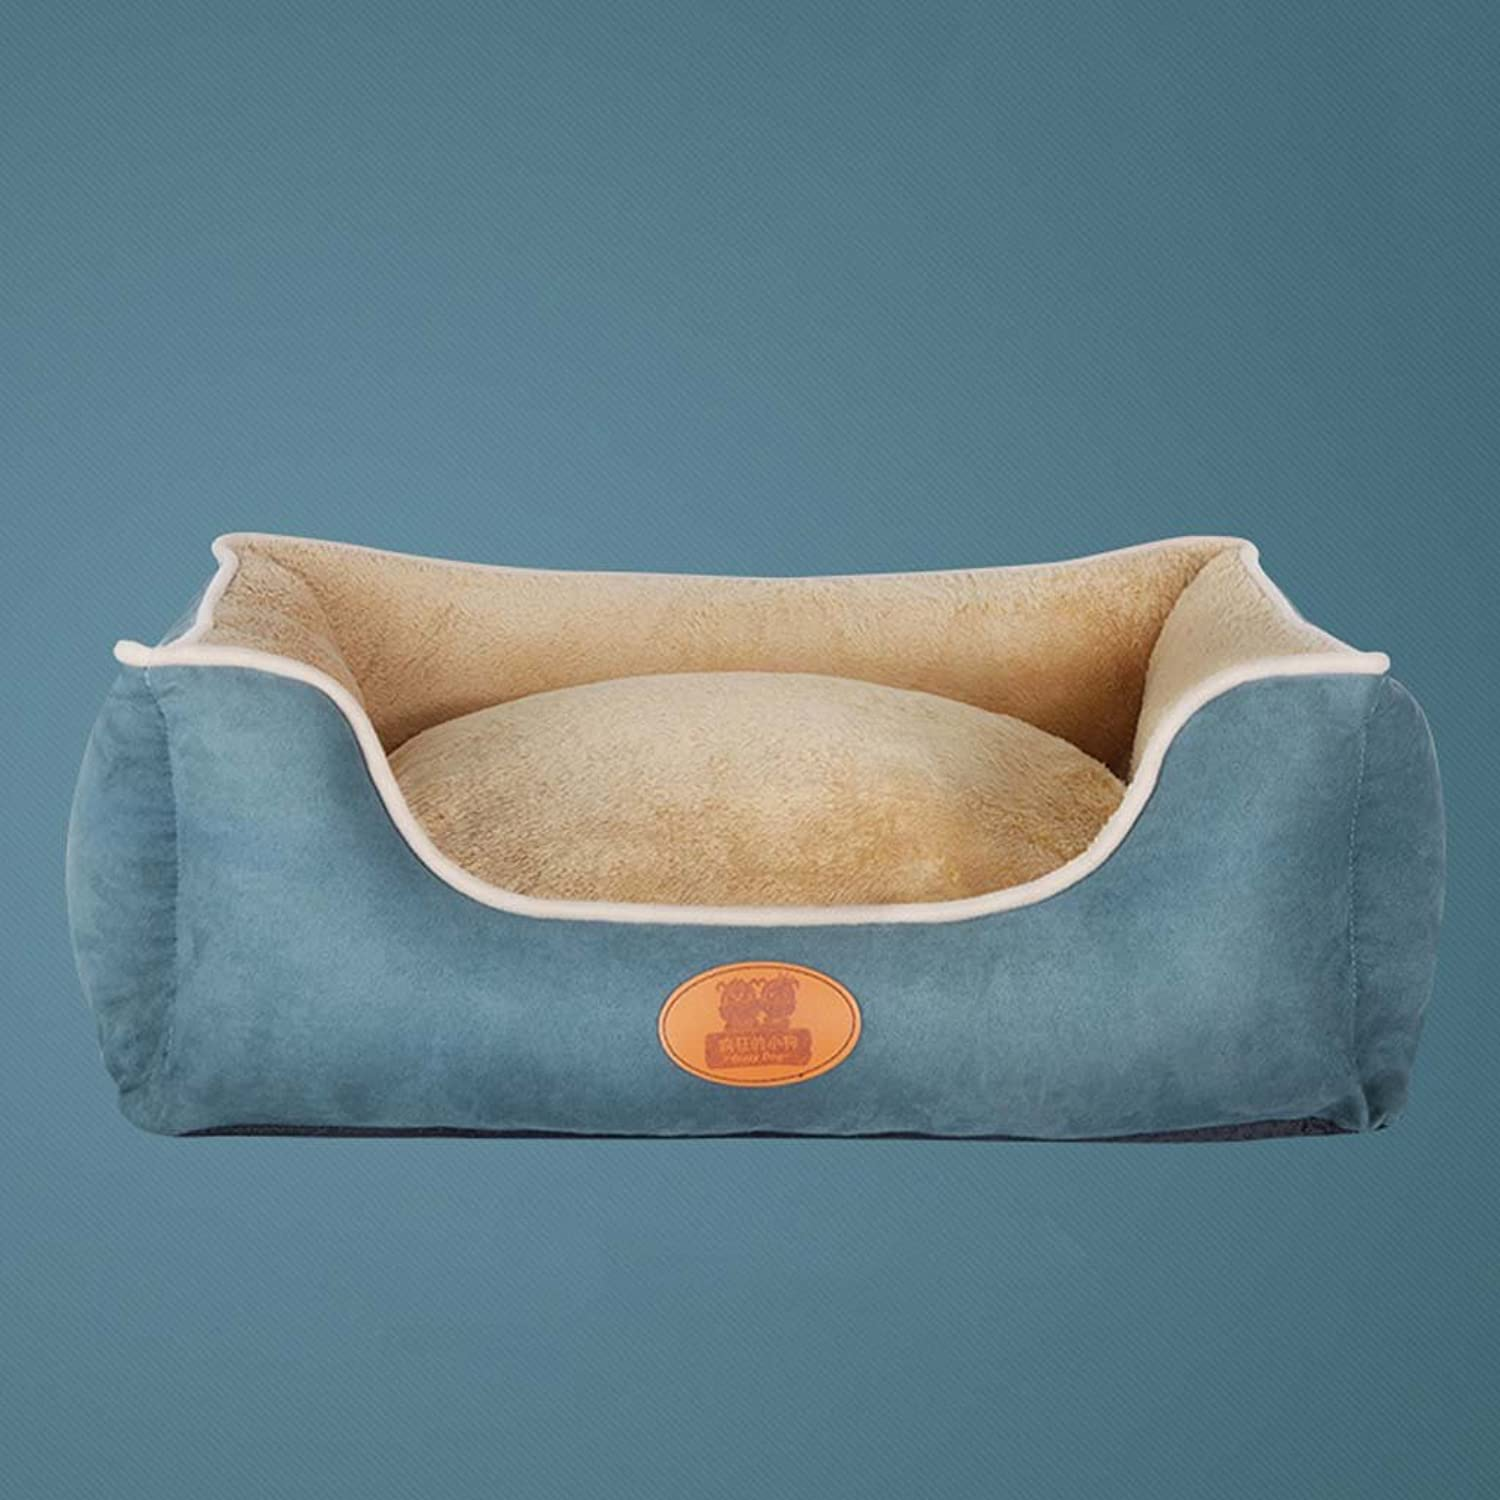 Dog's Bed, Plush Memory Foam Waterproof Dog Beds, Eases Pet Arthritis&Warm Pet Mattress, Washable Covers,Quality Durable Oxford Fabric,bluee,XL